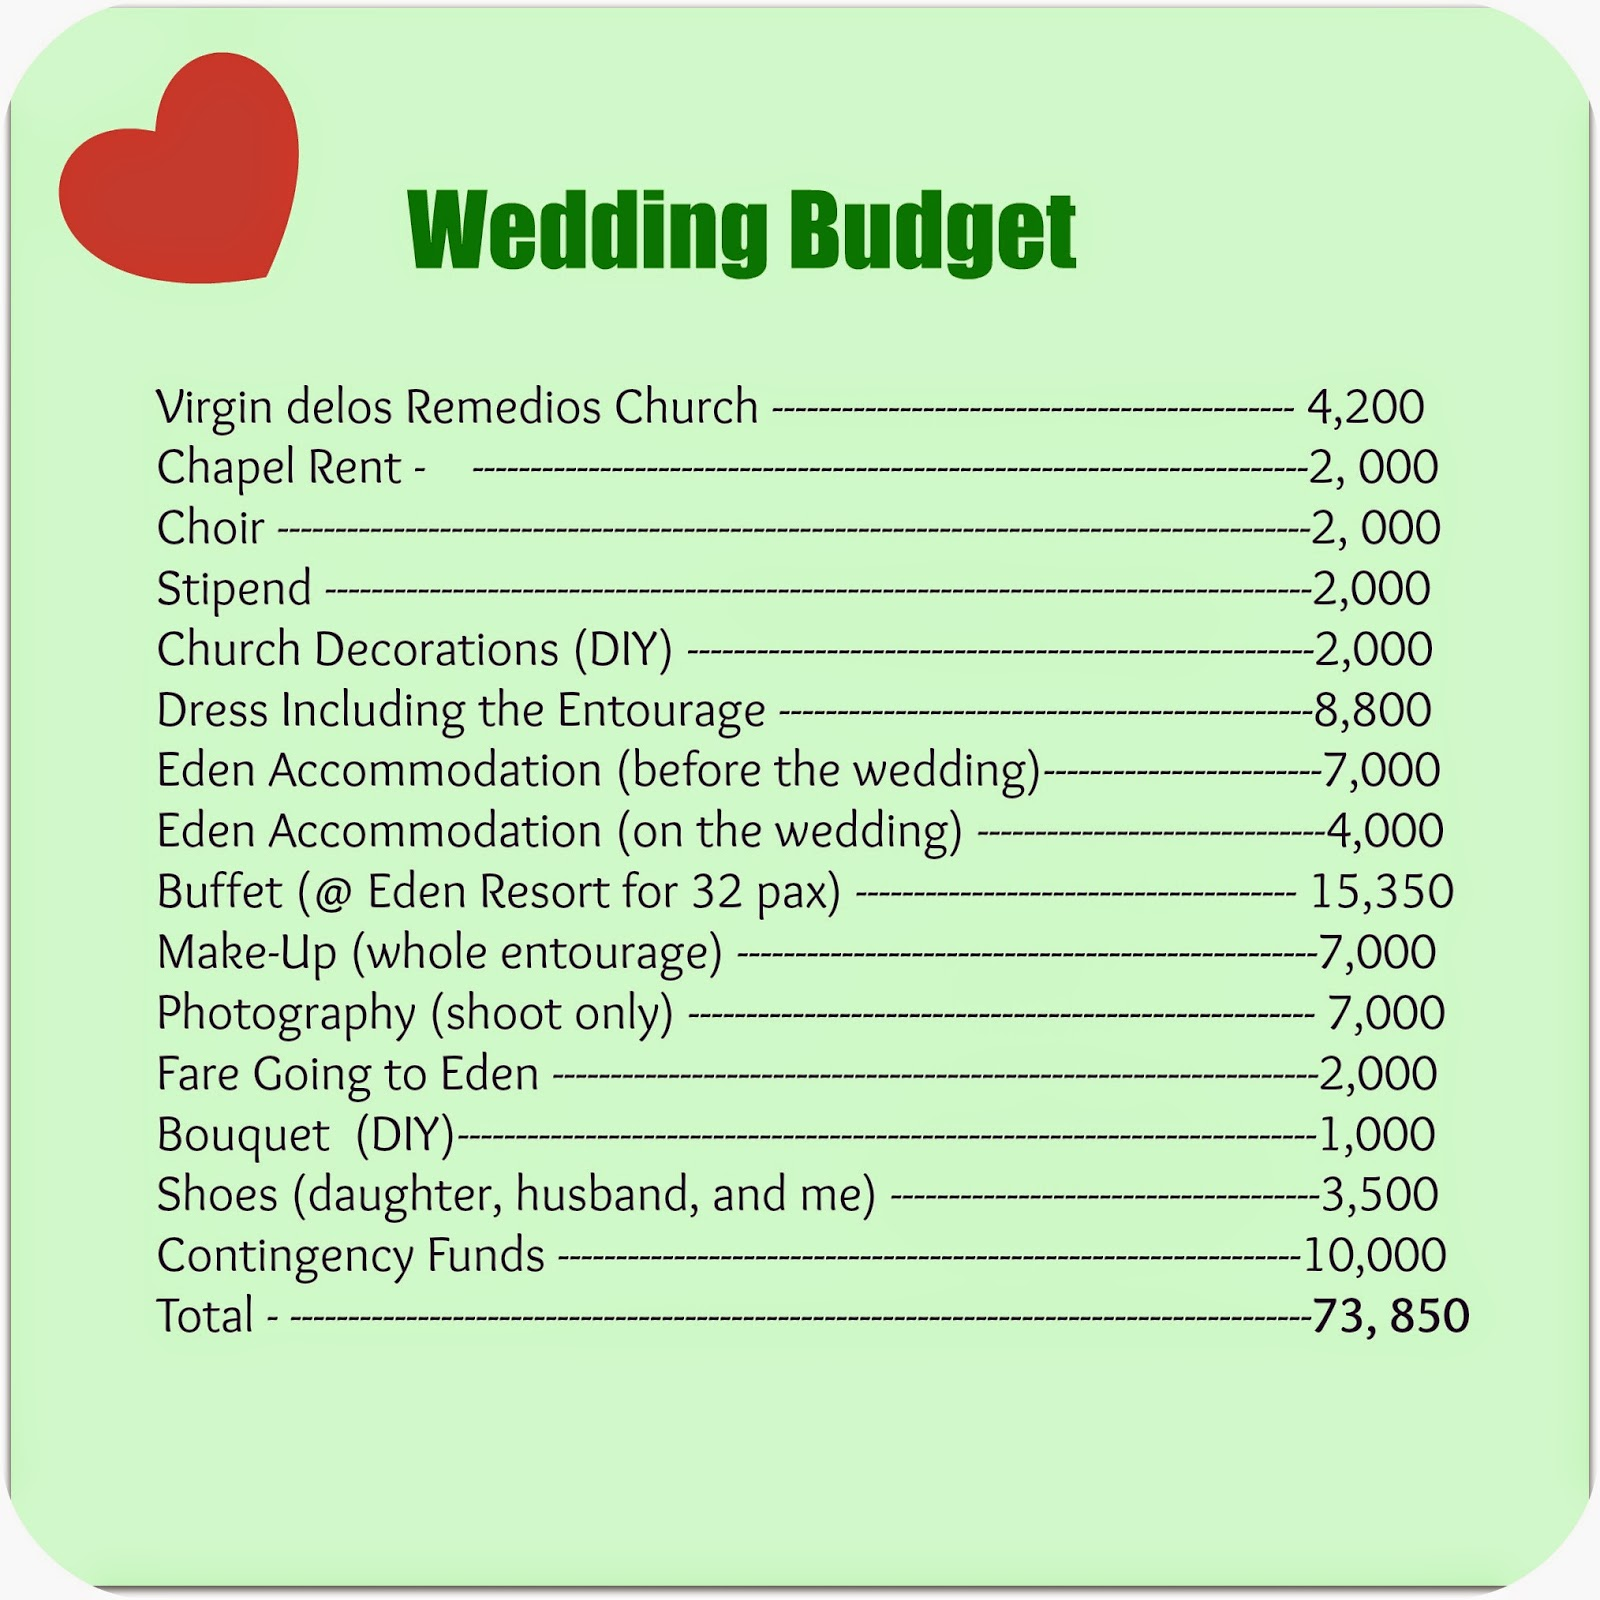 The Wedding Budget